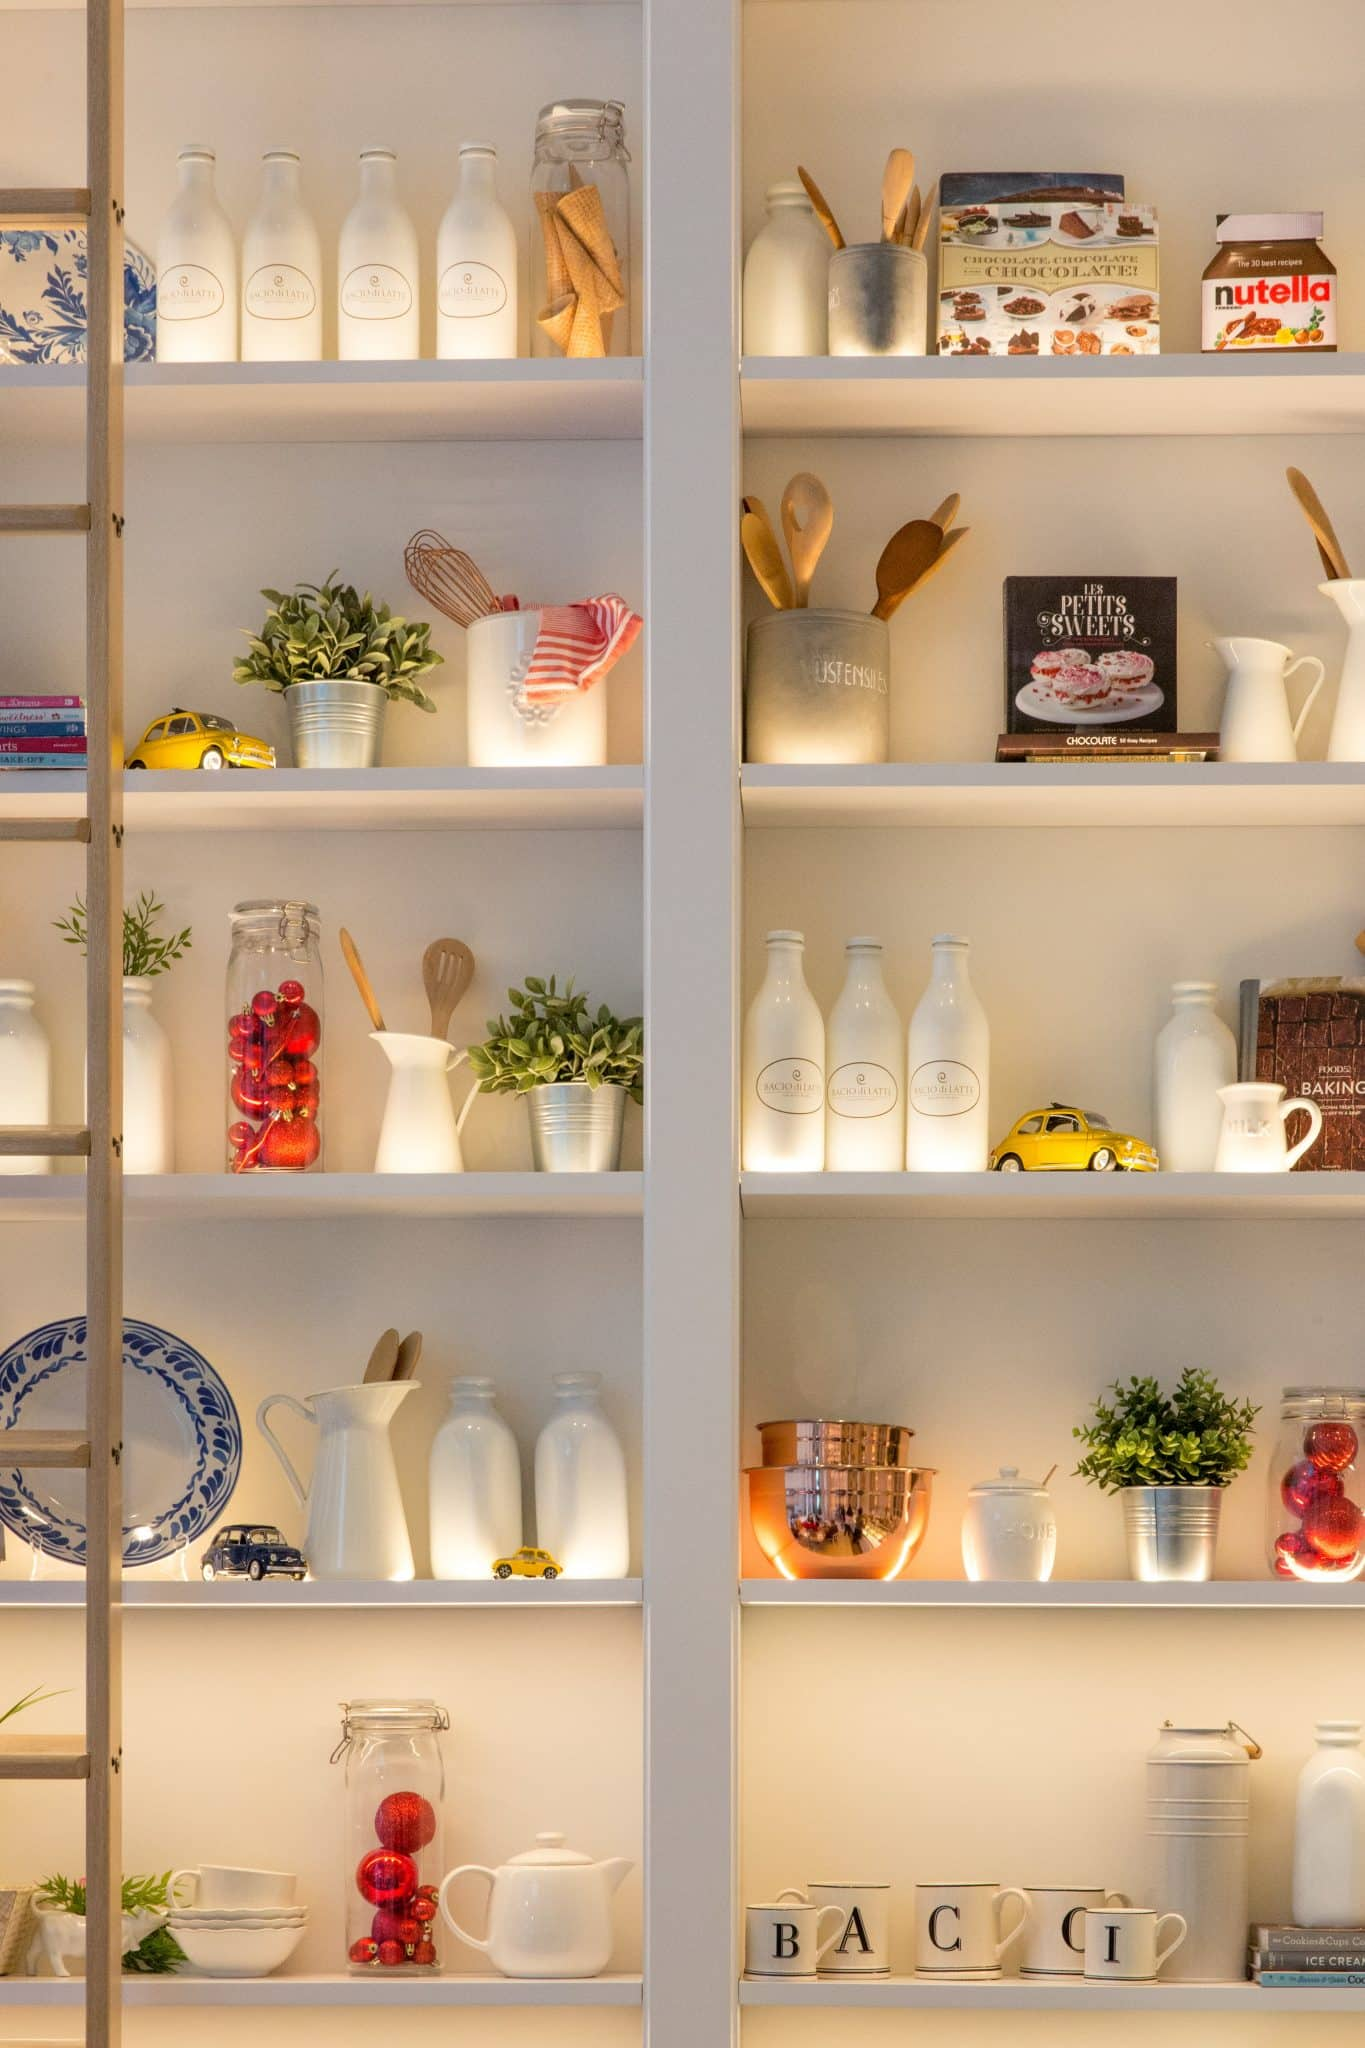 Photograph of a neatly organised pantry. Items in the pantry include glasses, mugs, teapots, jars, plates and condiments.